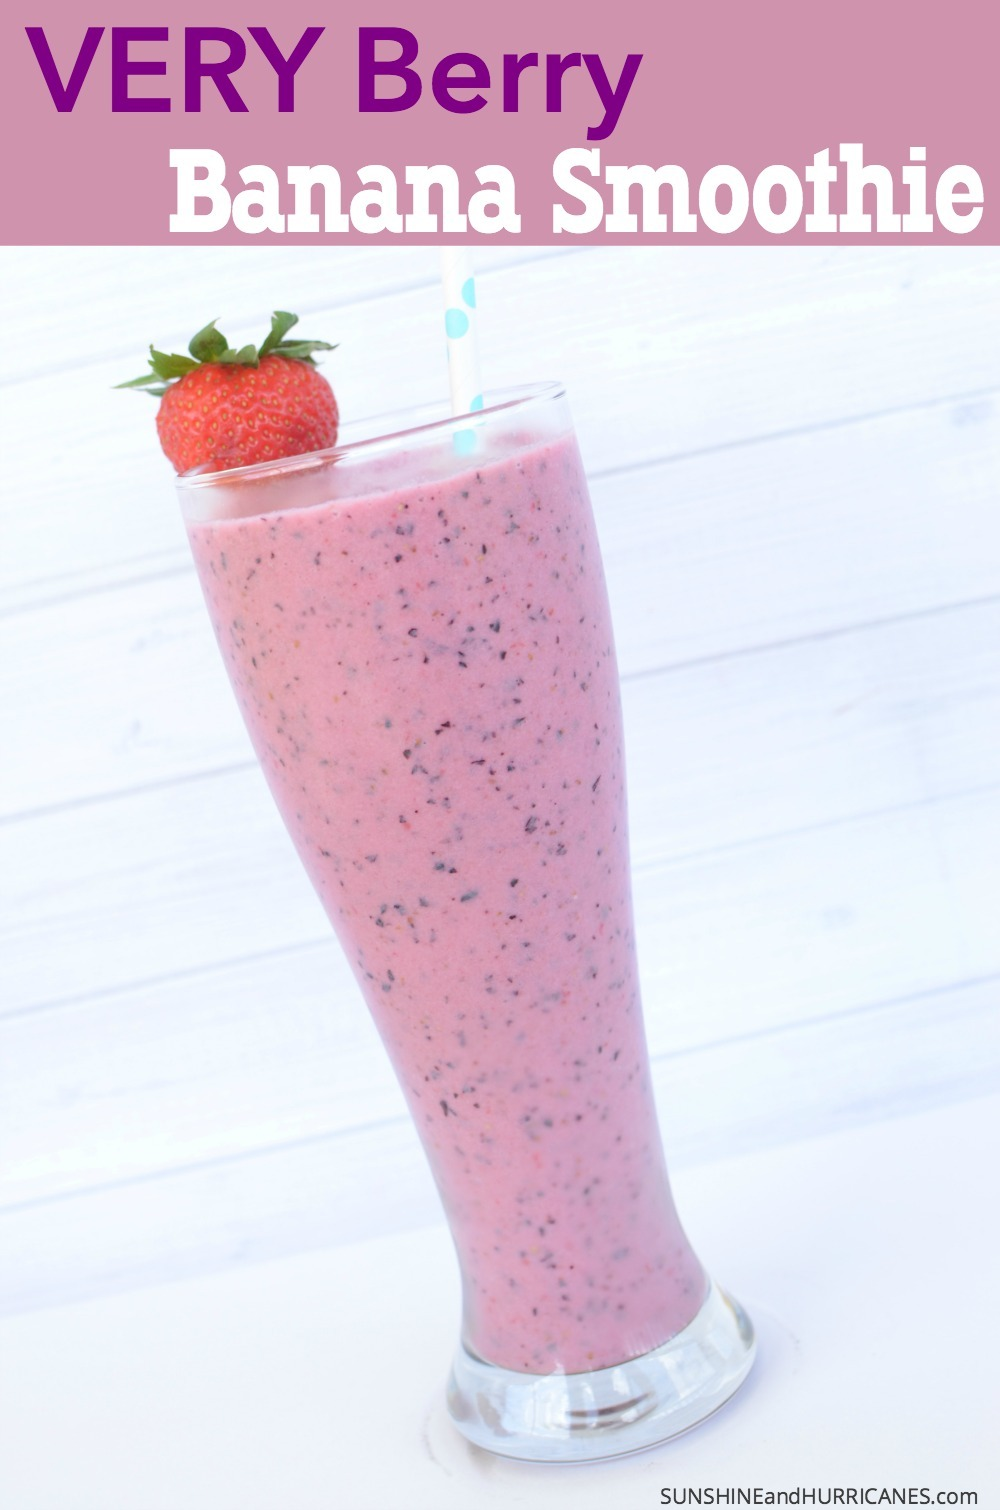 Mornings are busy, but breakfast is important for kids, especially as they had back to school. Get their day started off right with these delicious (and super easy) smoothie recipes. A particularly good morning meal option for hard to please tweens and teens. Back to School Breakfast Smoothie Recipes. SunshineandHurricanes.com